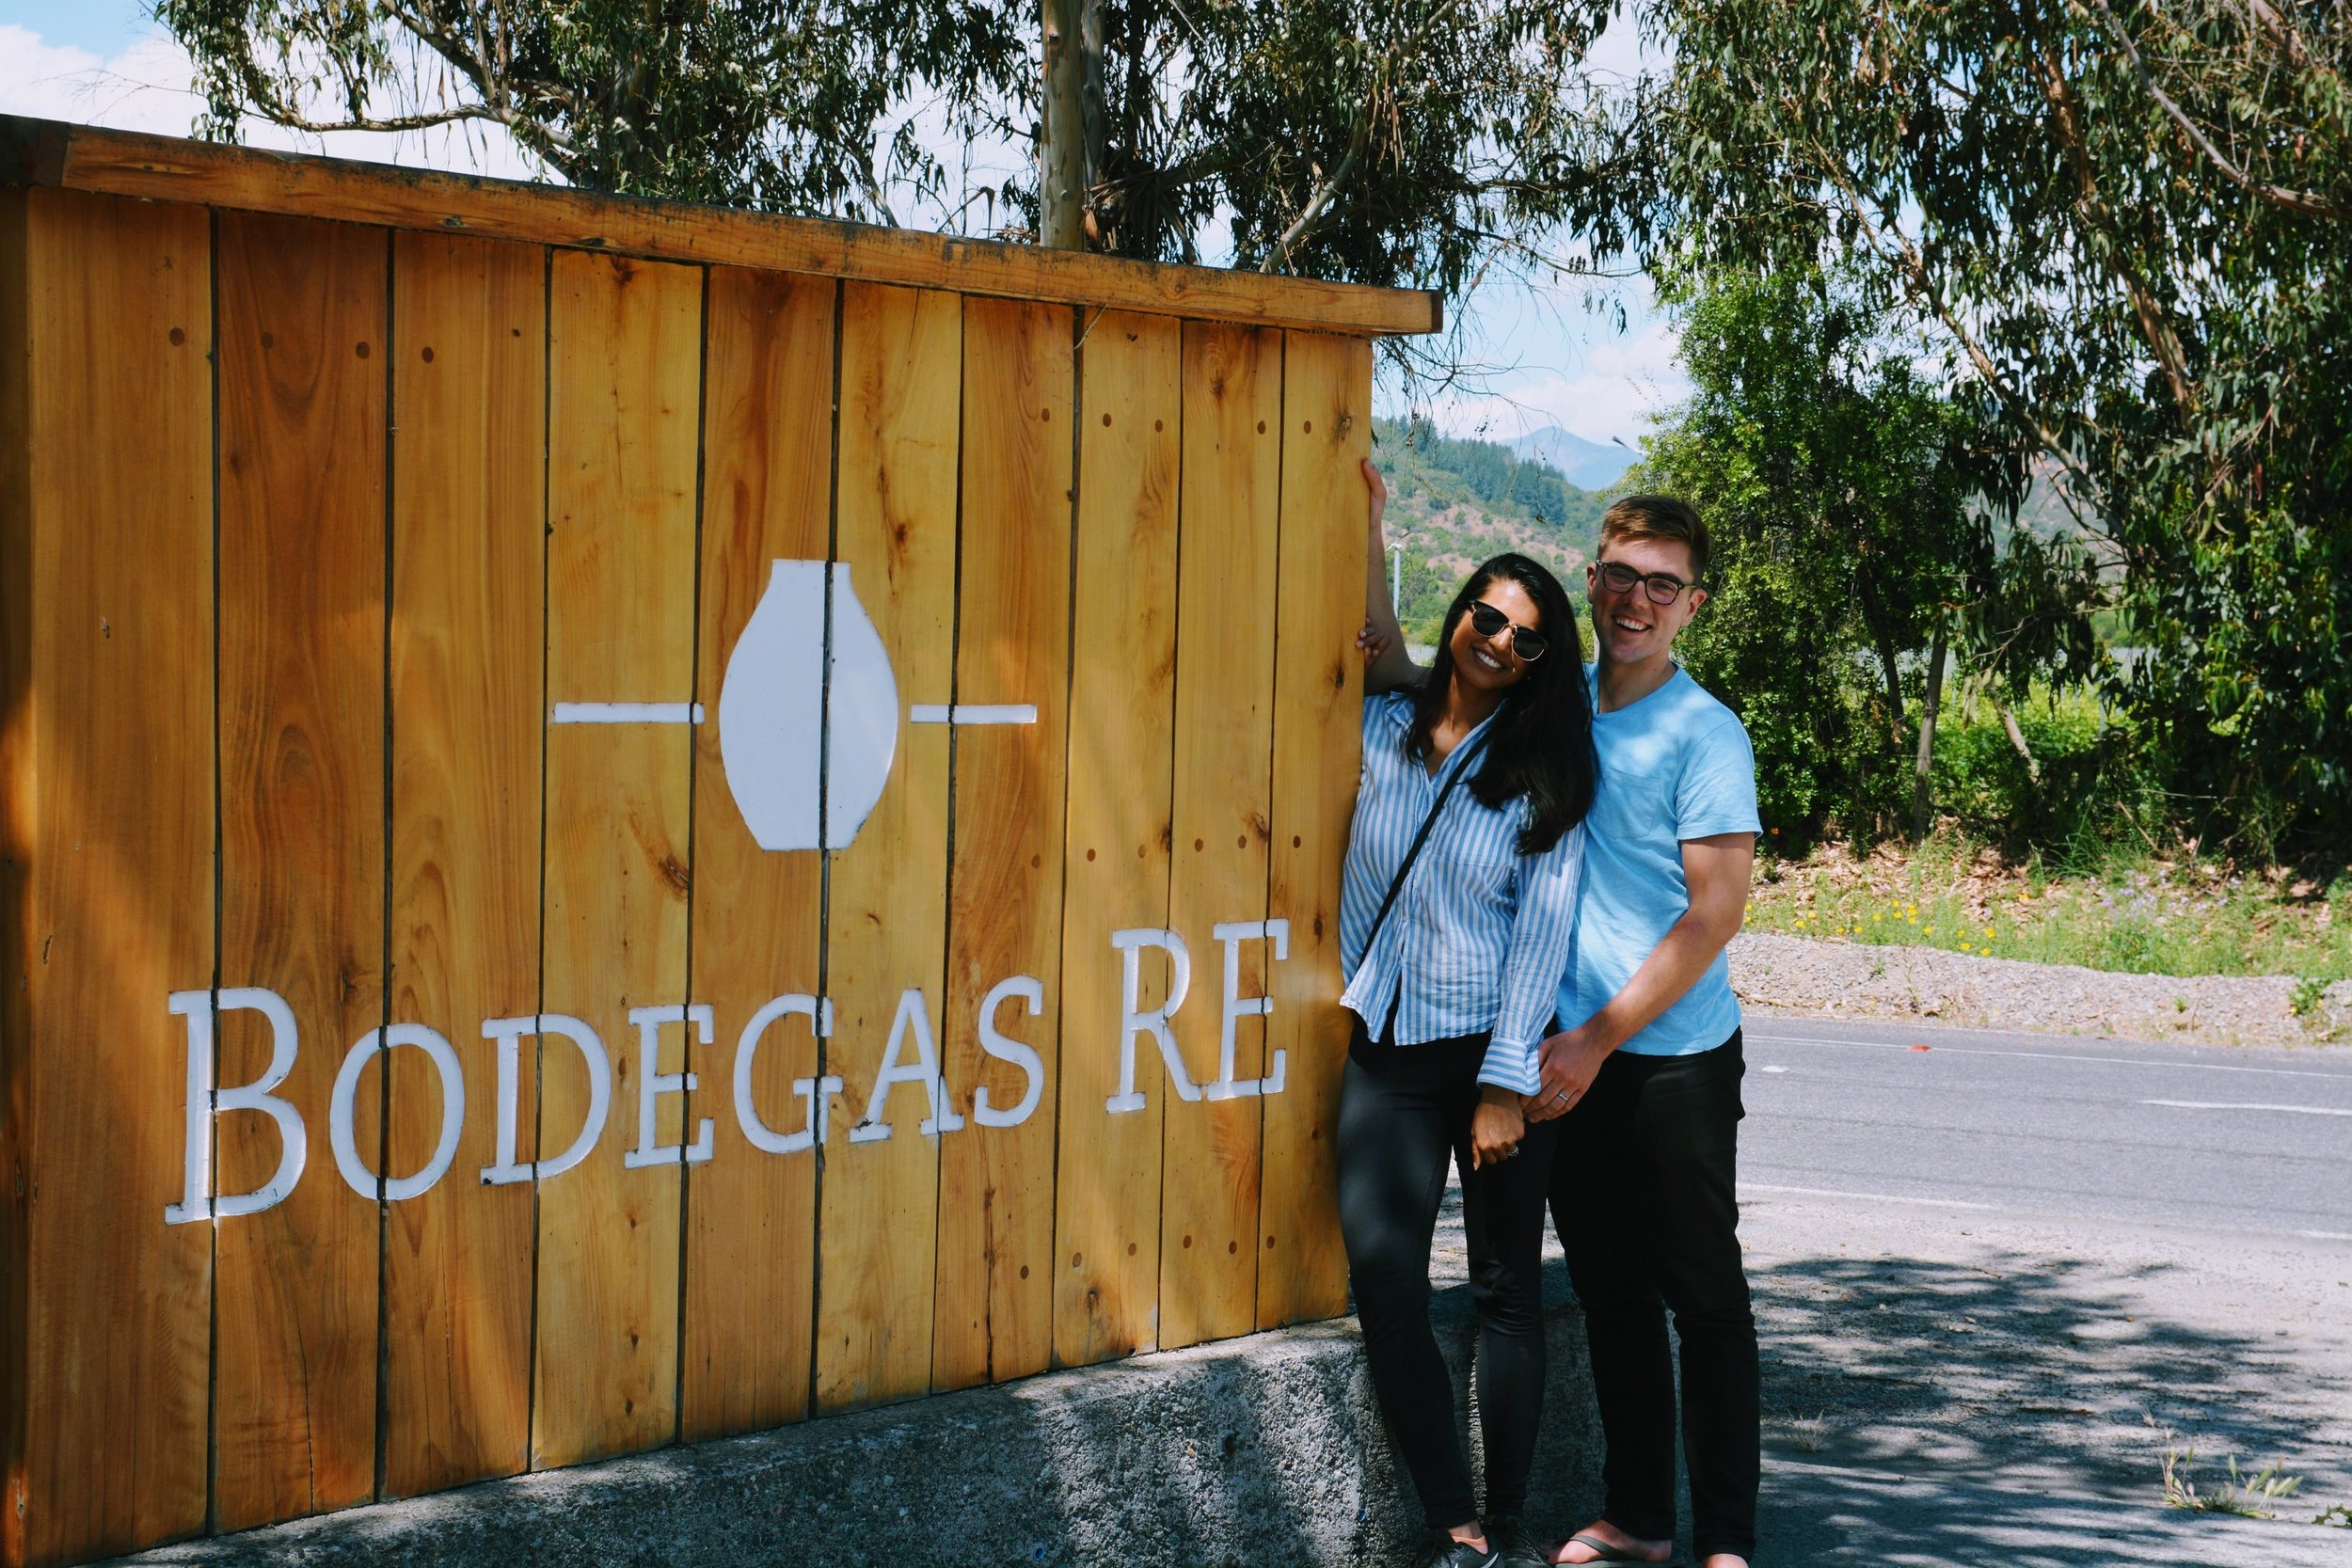 Bodegas Re Winery in Casablanca, Chile